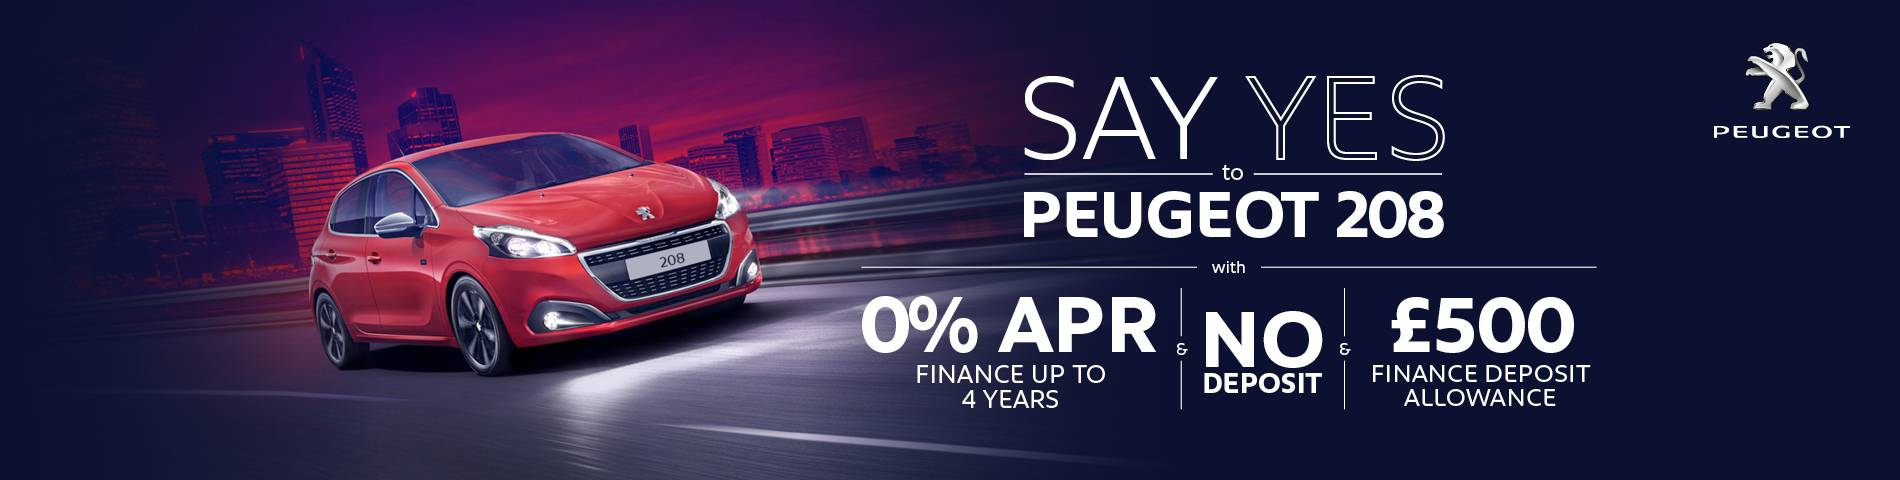 Say Yes to Peugeot 208